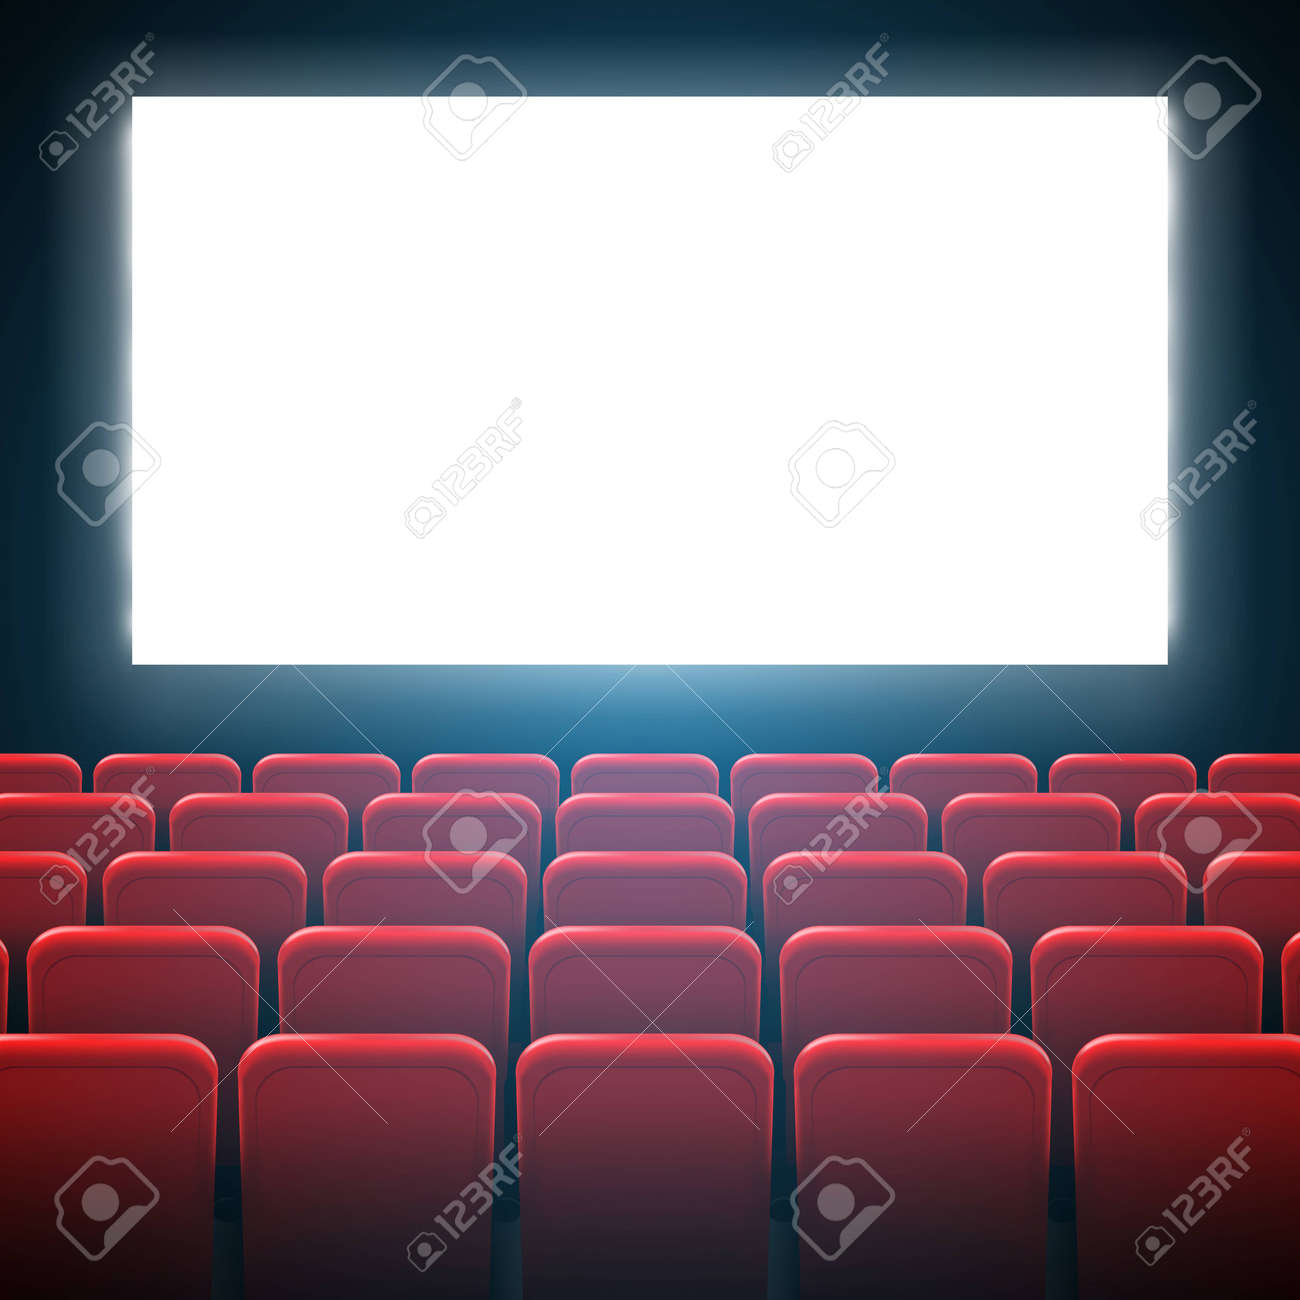 Creative illustration of movie cinema screen frame and theater interior. Art design premiere poster background, lights and rows red seats. Abstract concept graphic scene element. - 120956869